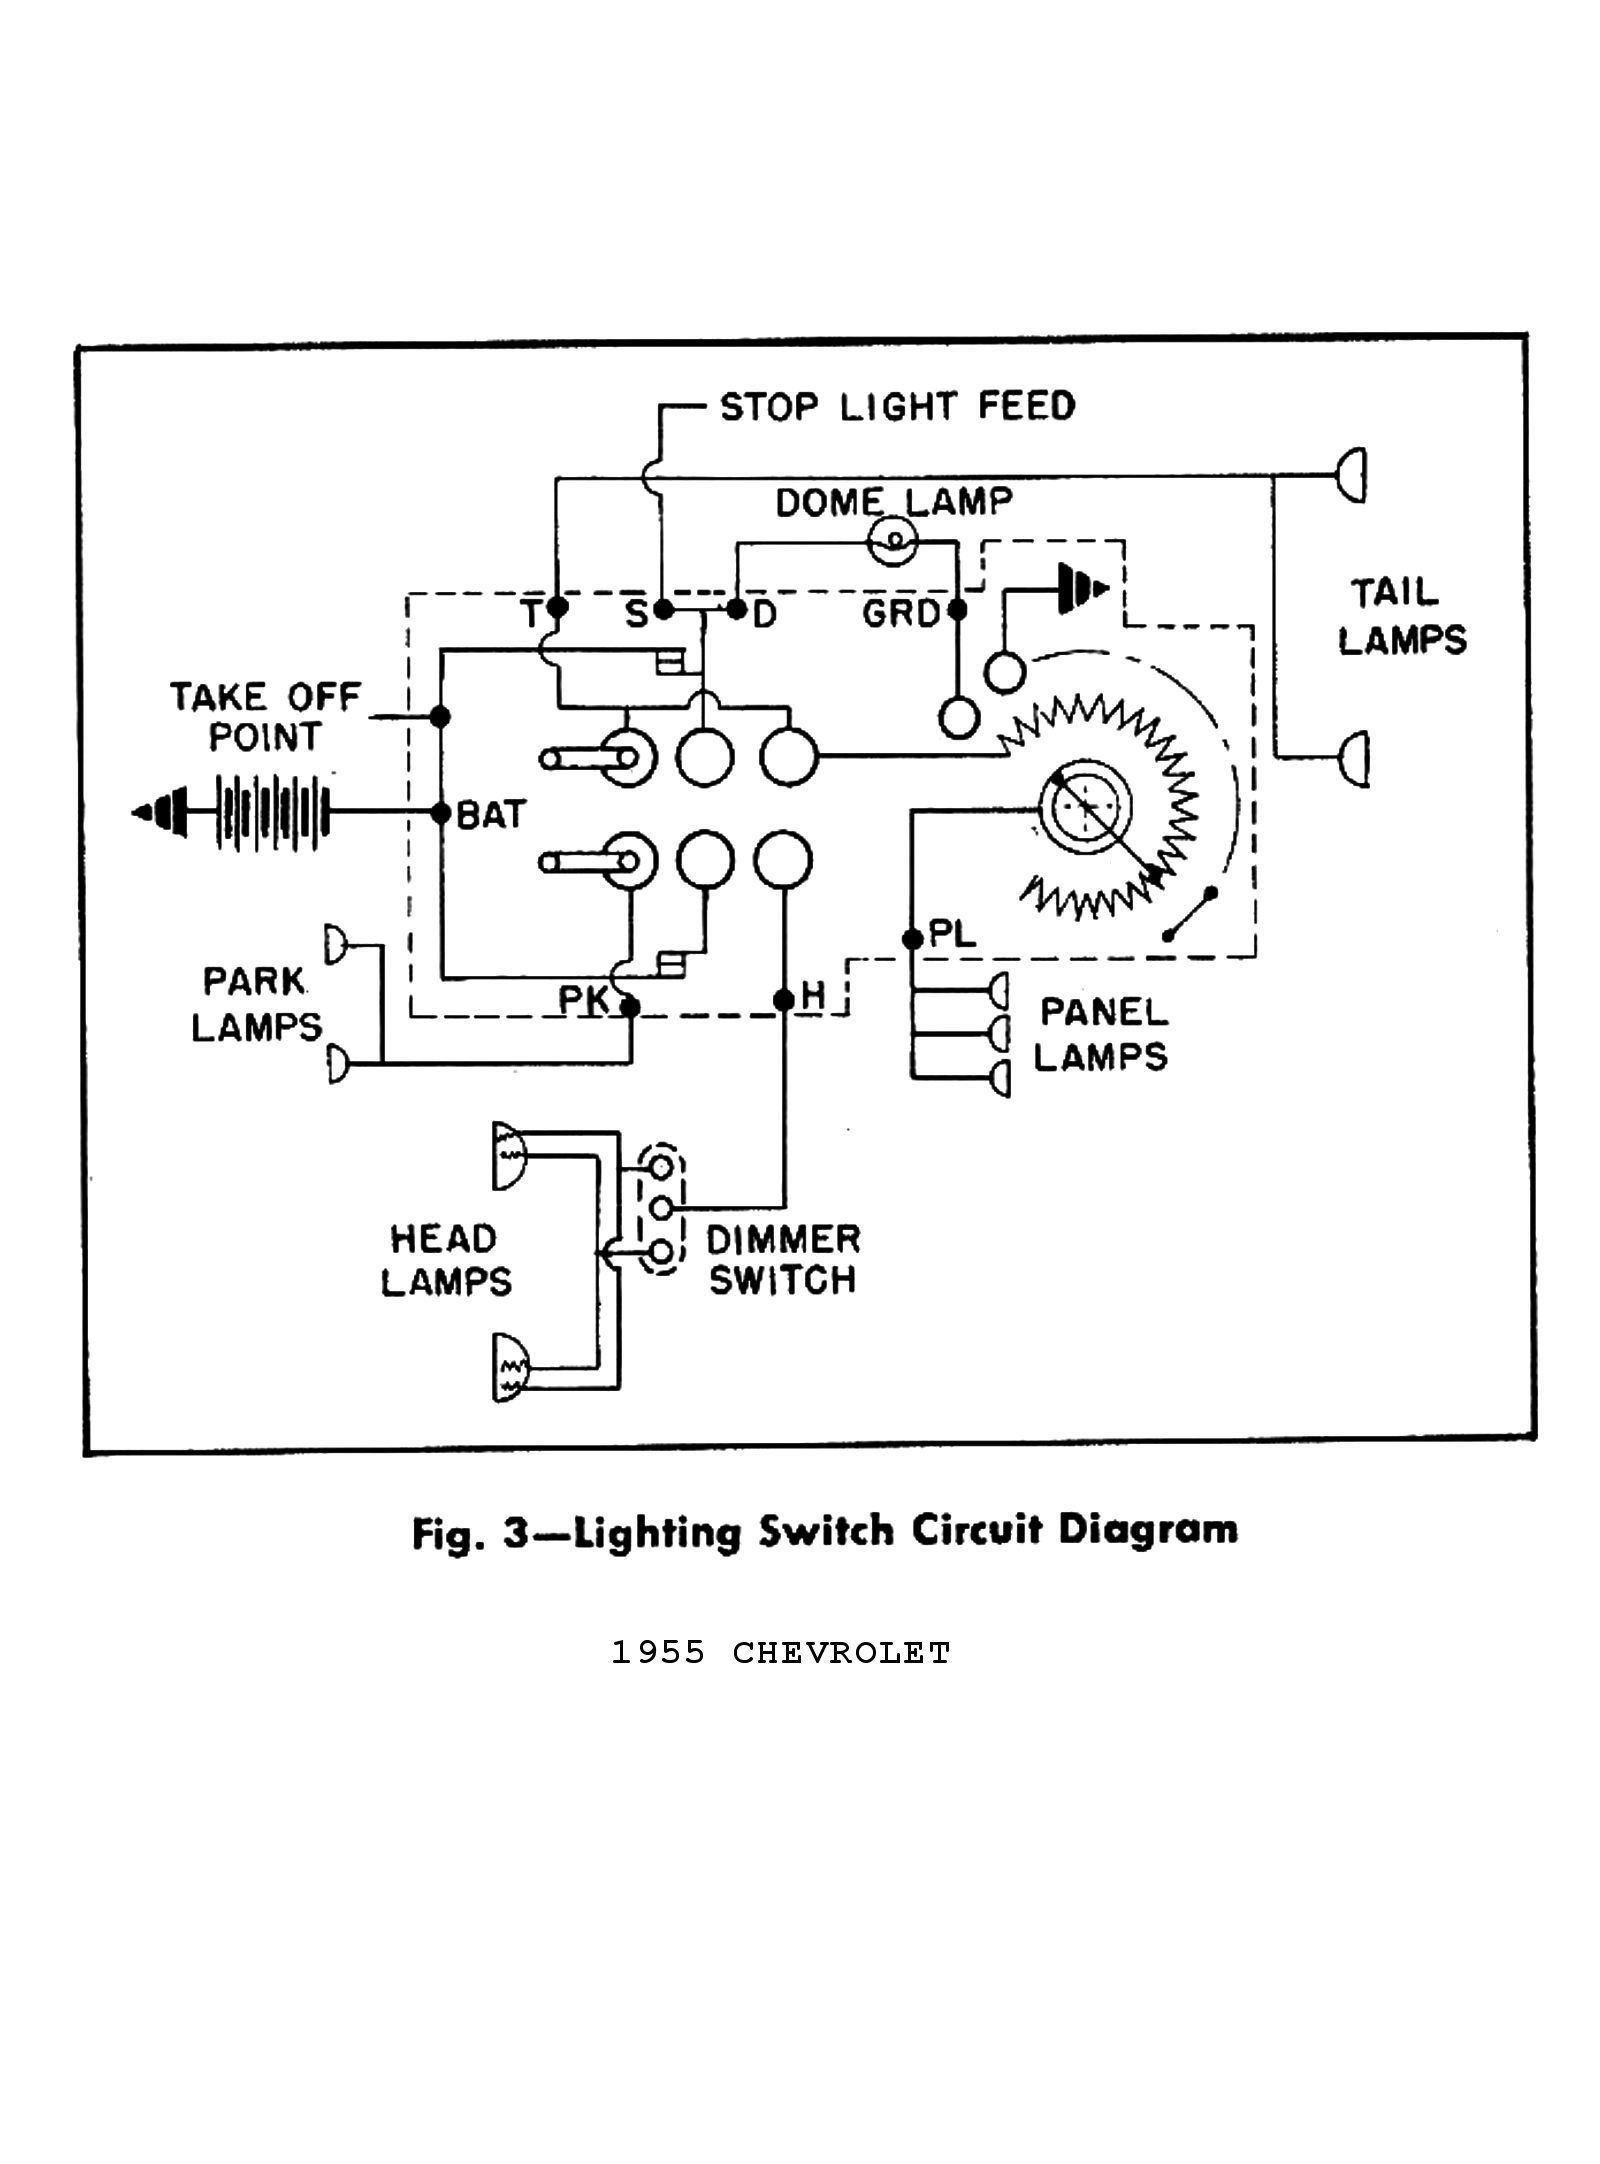 medium resolution of 55 chevy ignition switch wiring diagram wiring diagram yer 1980 chevy truck ignition wiring diagram truck ignition wiring diagram